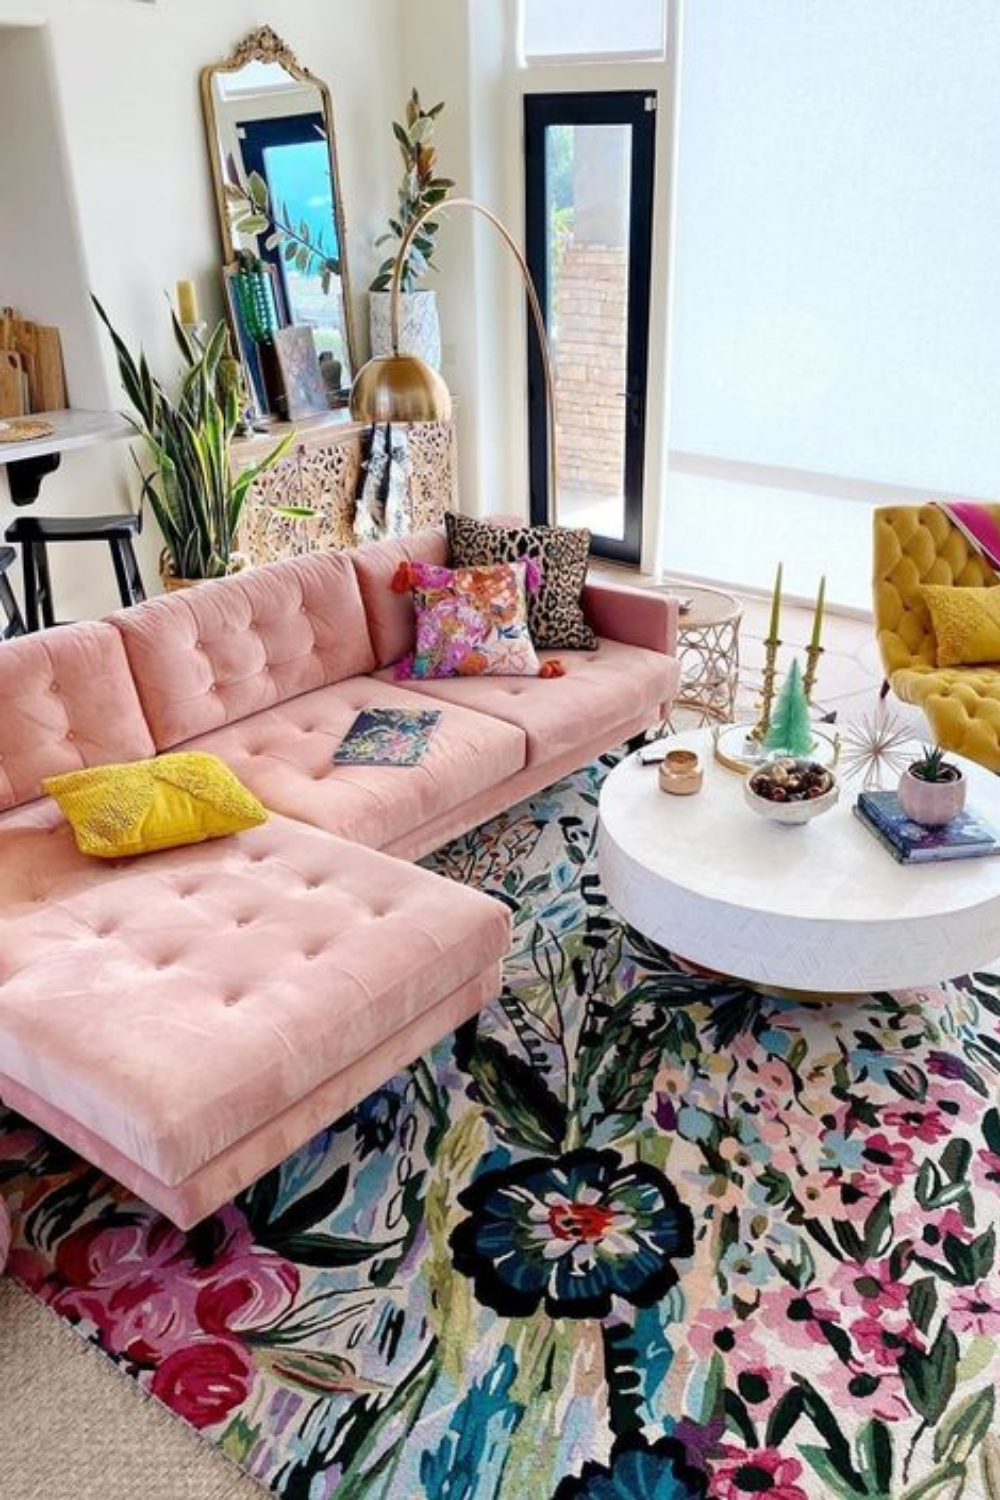 Eclectic Hippie In 2021 Living Room Designs Home Decor Small Living Room Design